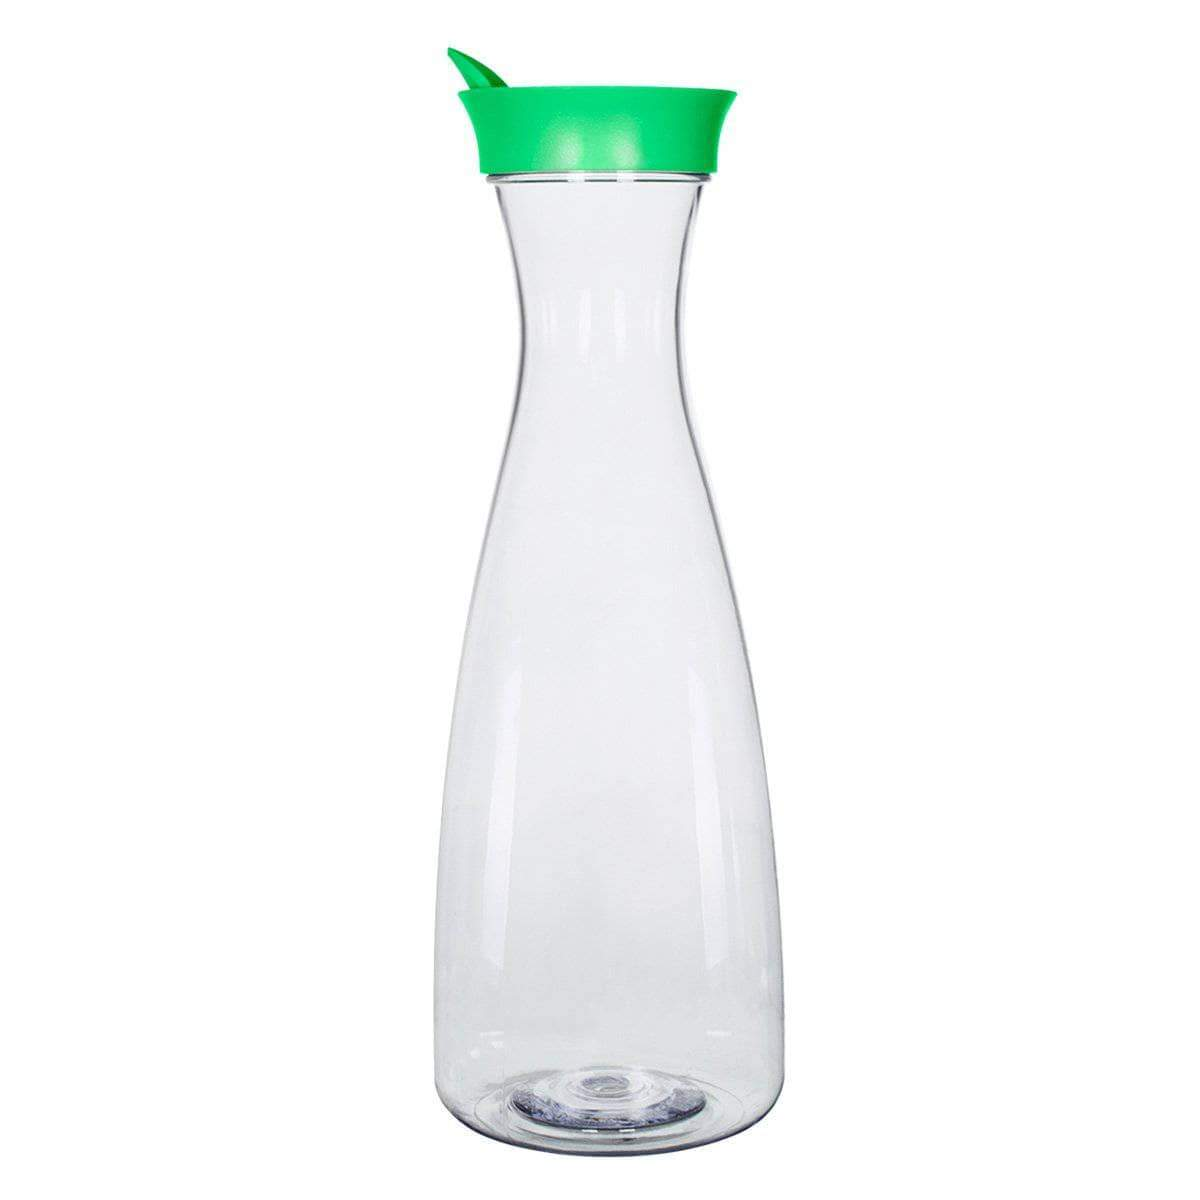 Geo Bottles Pitchers Green 1.5 Liter (50 oz.) BPA FREE Plastic Carafe Pitcher Decanter Jug with Green Lid